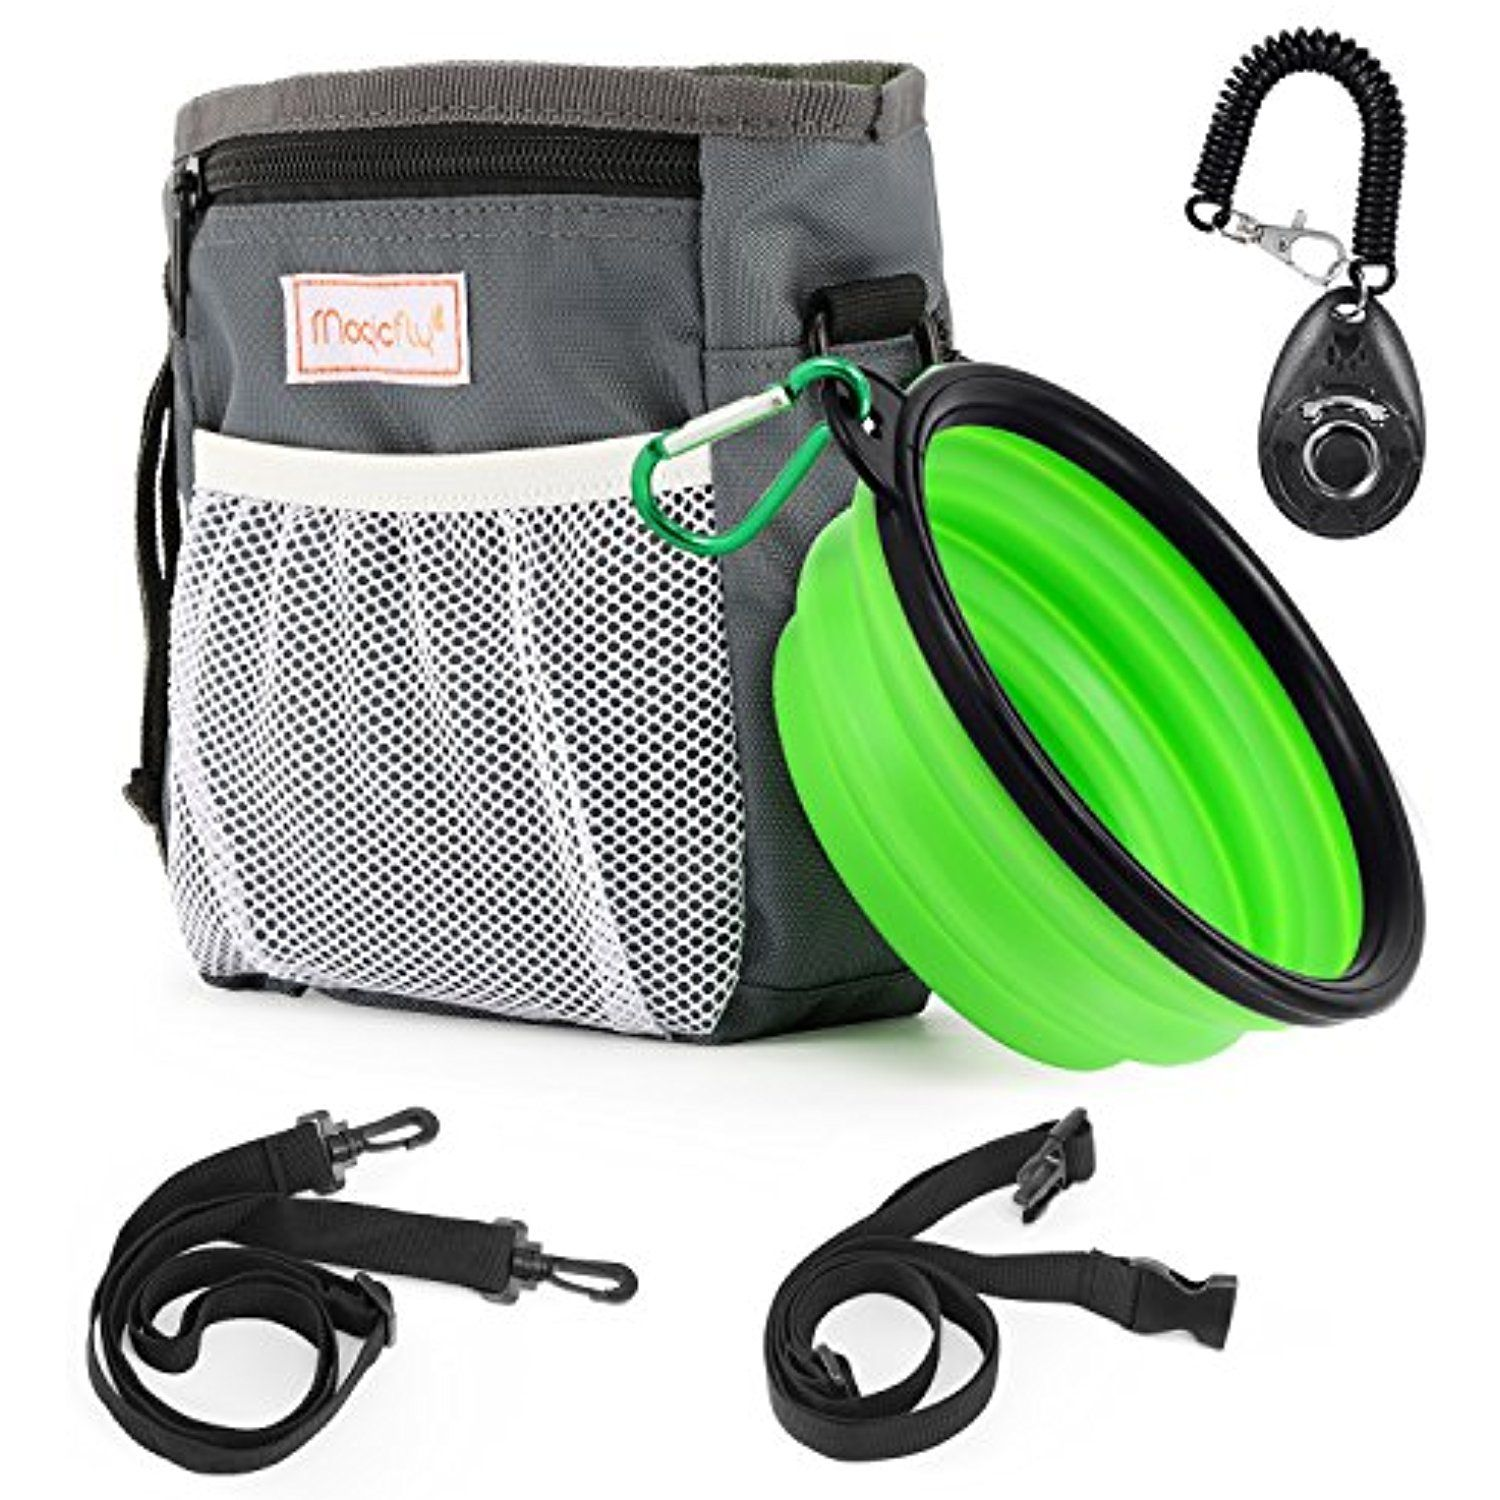 Magicfly Dog Treat Traning Pouch Bag With Collapsible Pet Bowl Clicker Adjule Belt Built In Dispenser 3